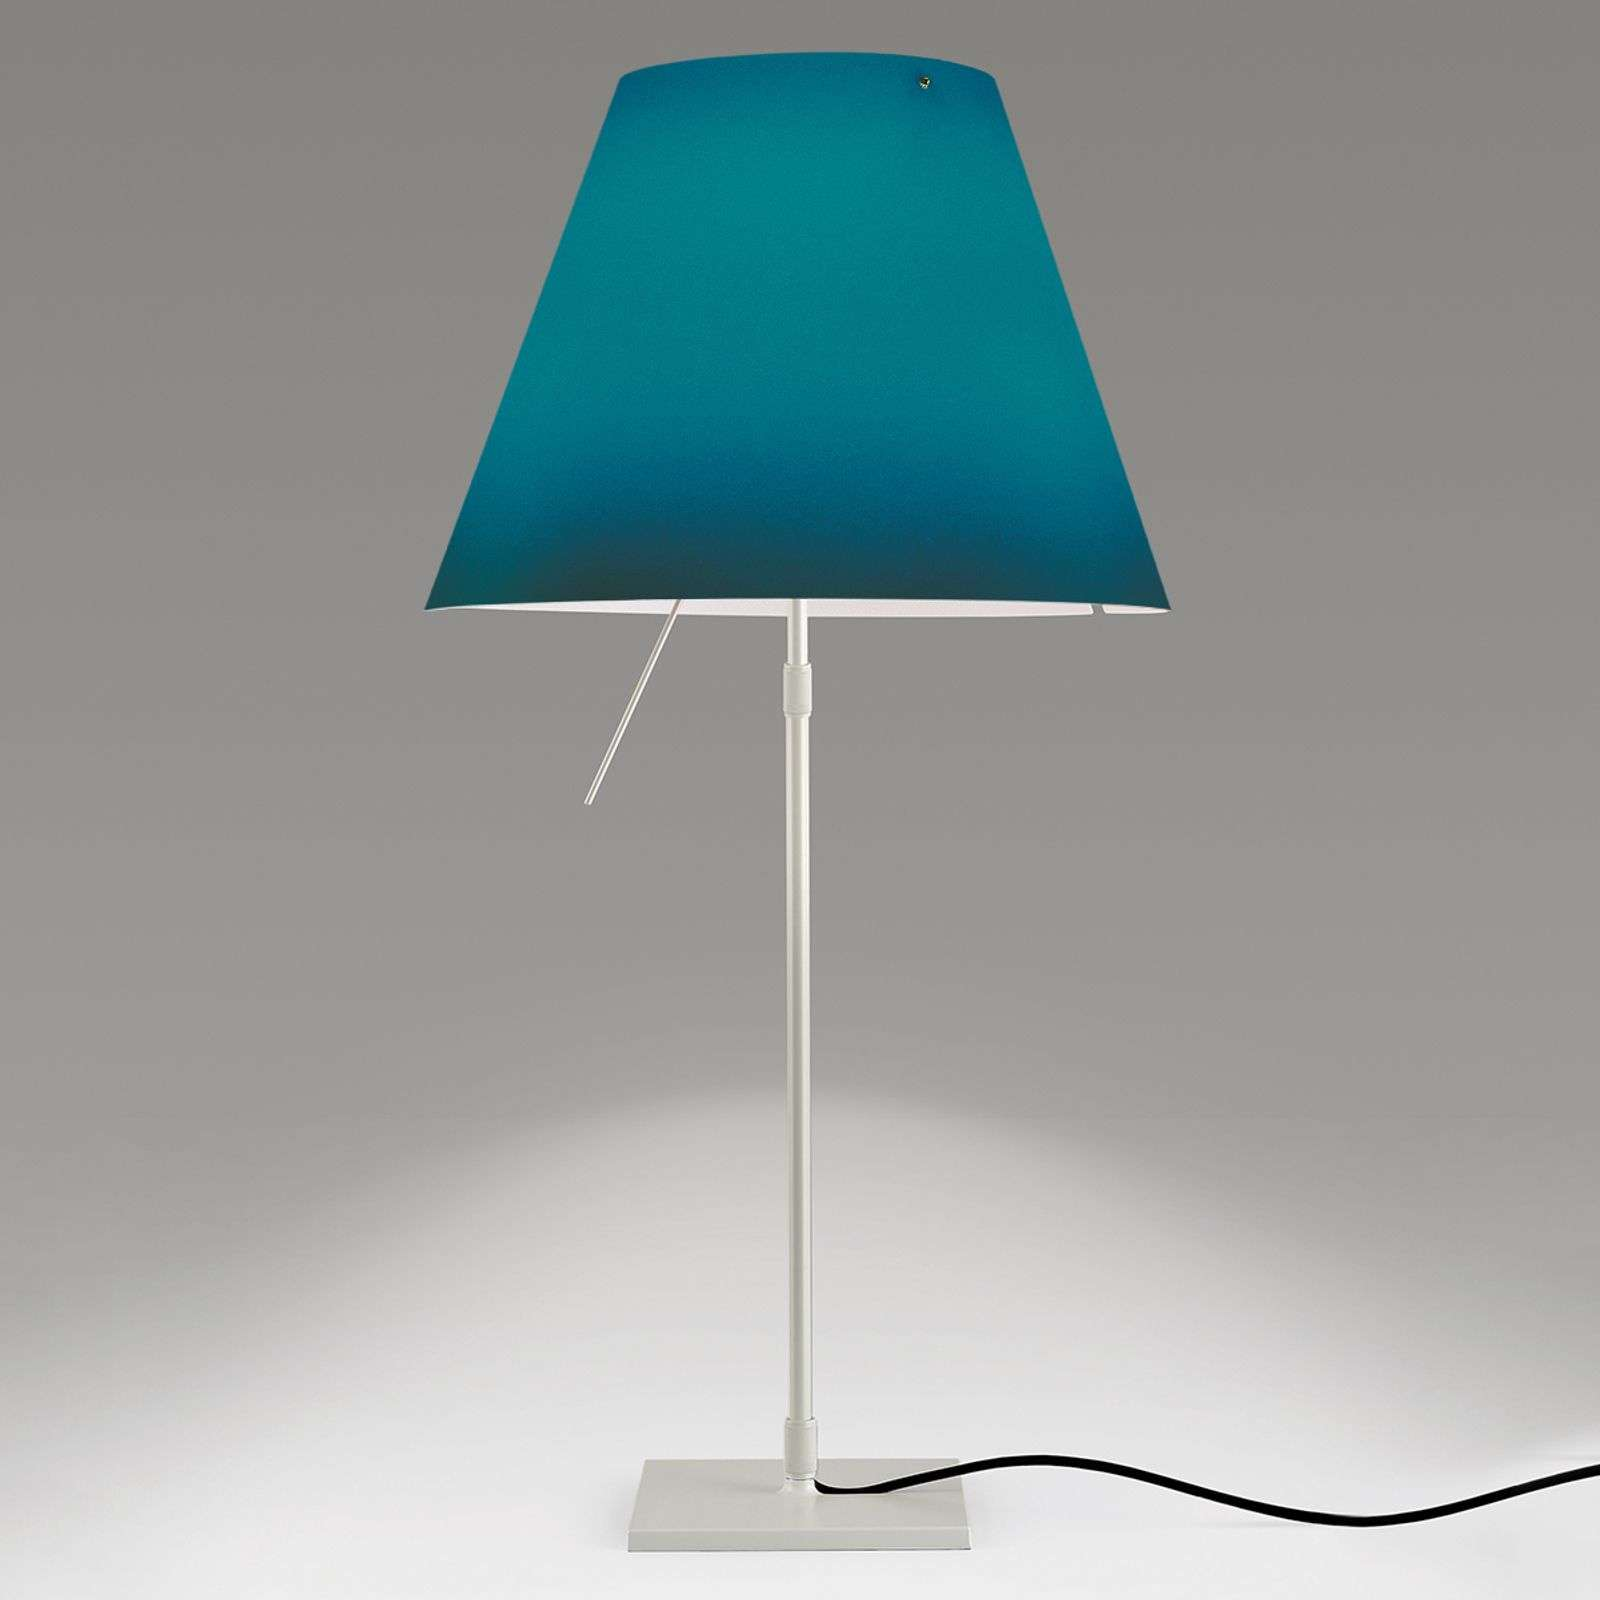 Lampe à poser LED décorative Costanza en bleu